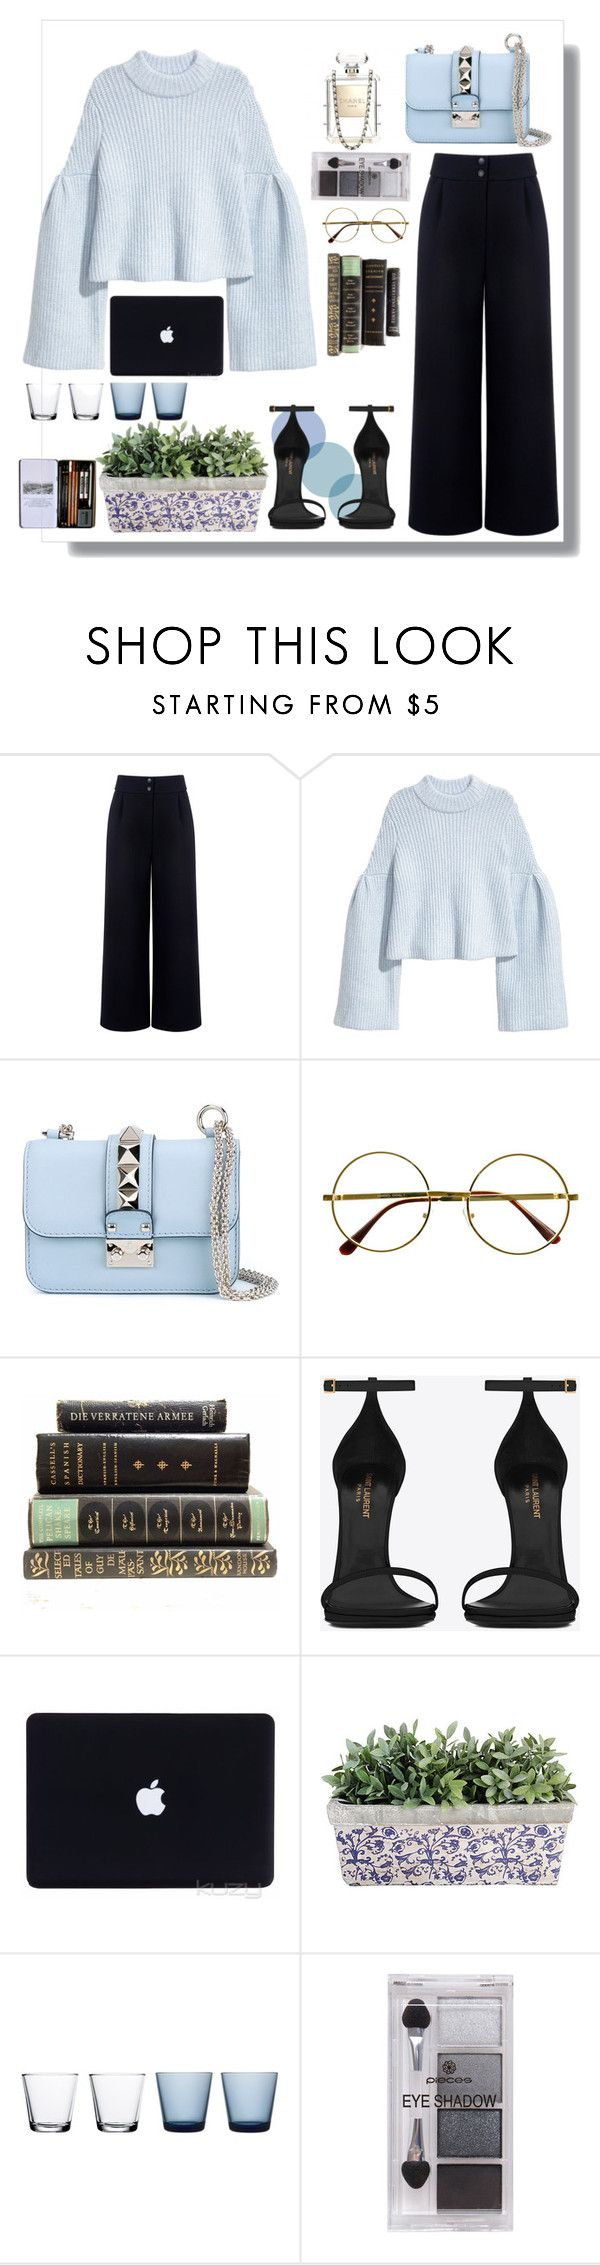 """""""baby blue"""" by salmiun ❤ liked on Polyvore featuring Être Cécile, Valentino, Retrò, Yves Saint Laurent, iittala and Pieces"""